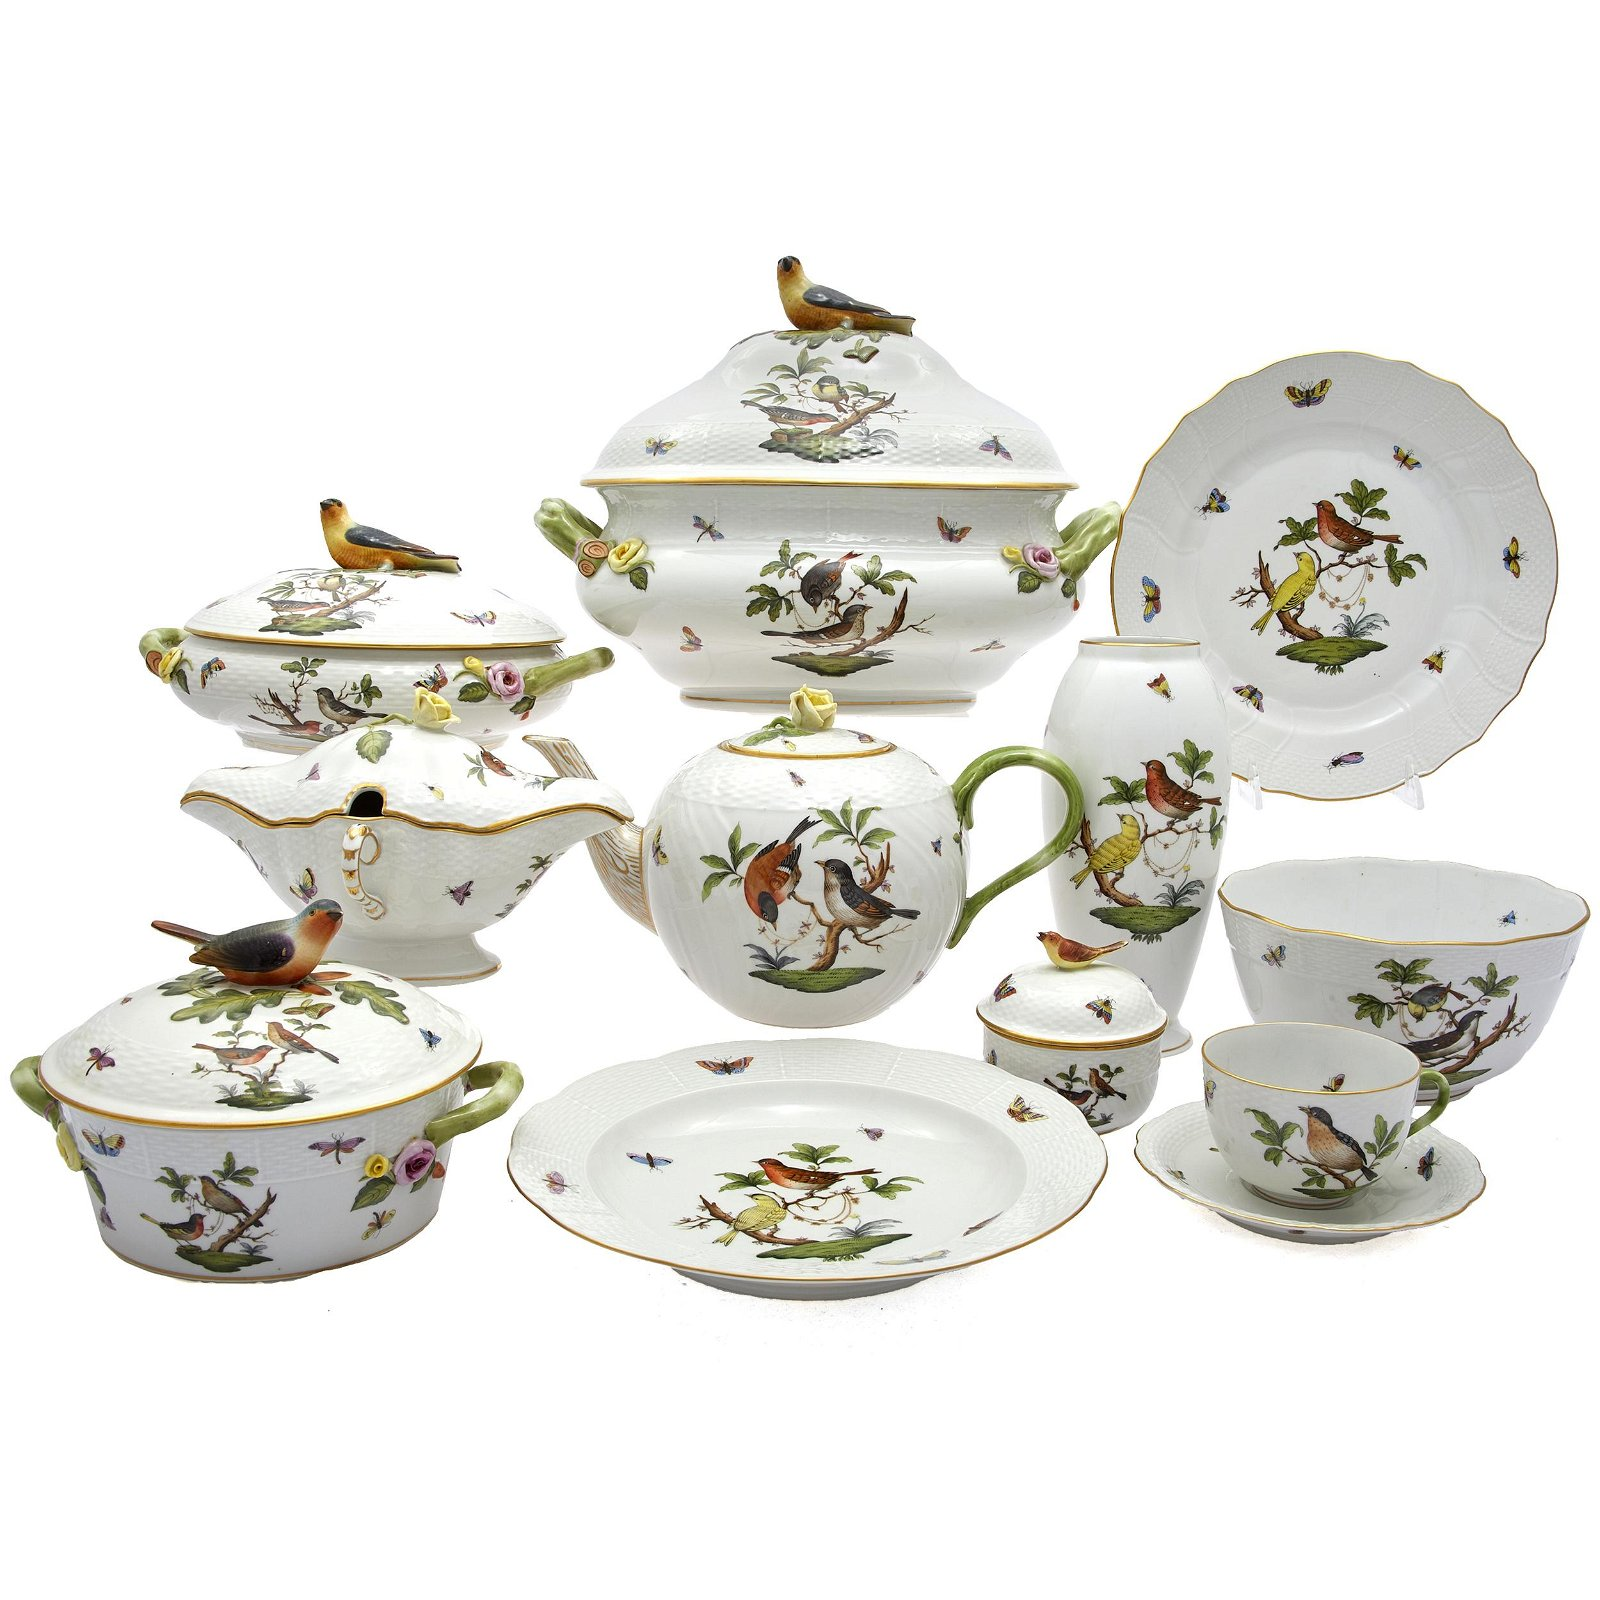 Herend Rothschild Bird Porcelain Table Service